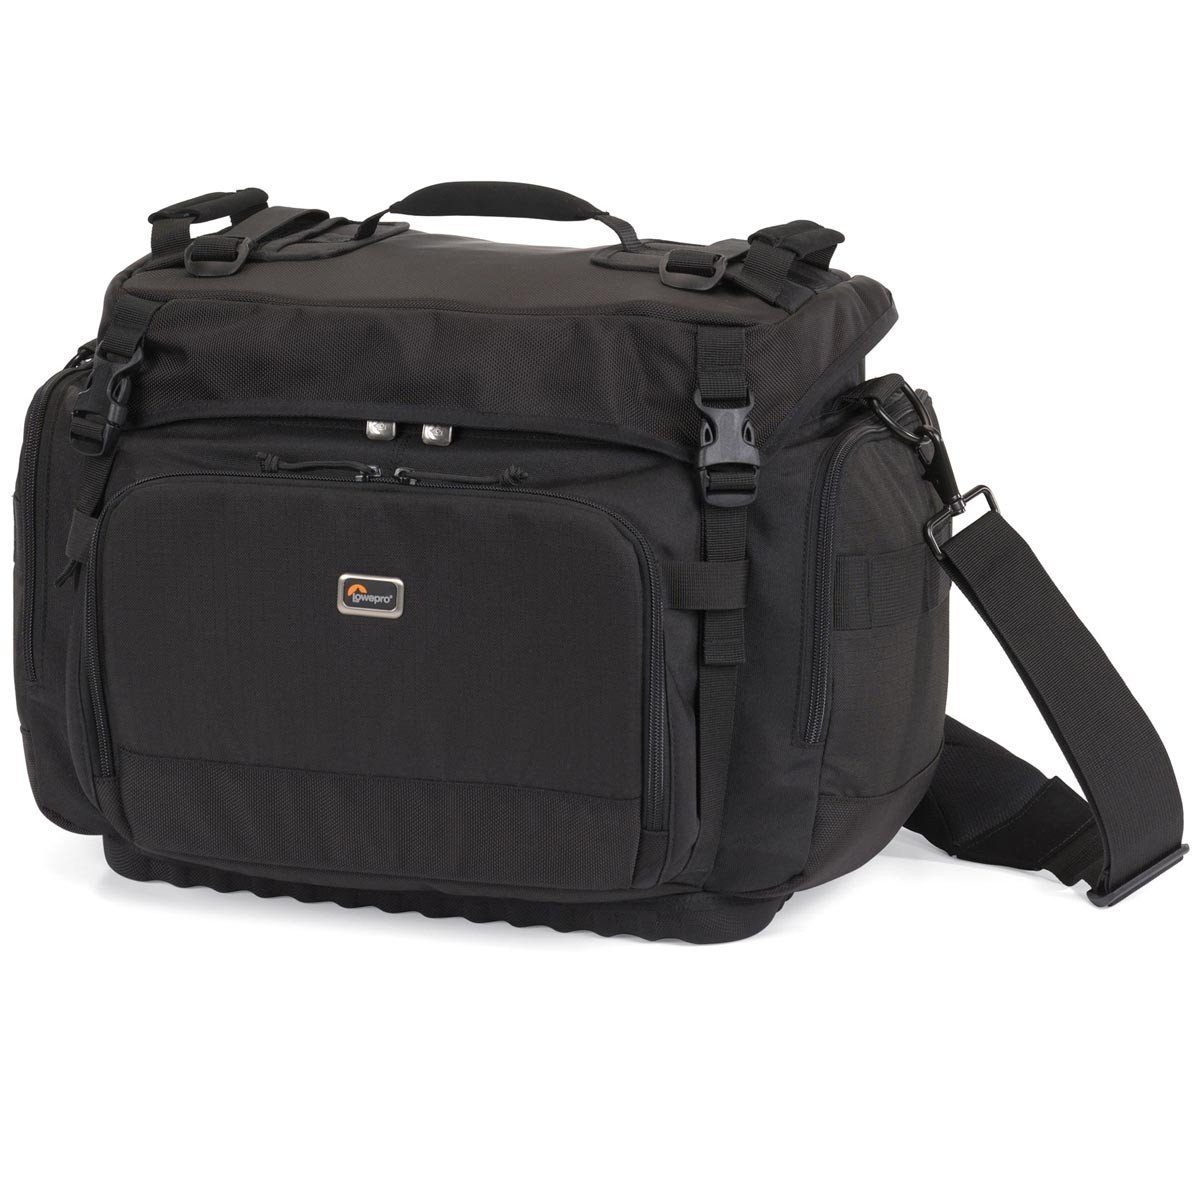 Lowepro Lp36054 Magnum 400 Aw Pro Photographer Bag For Two